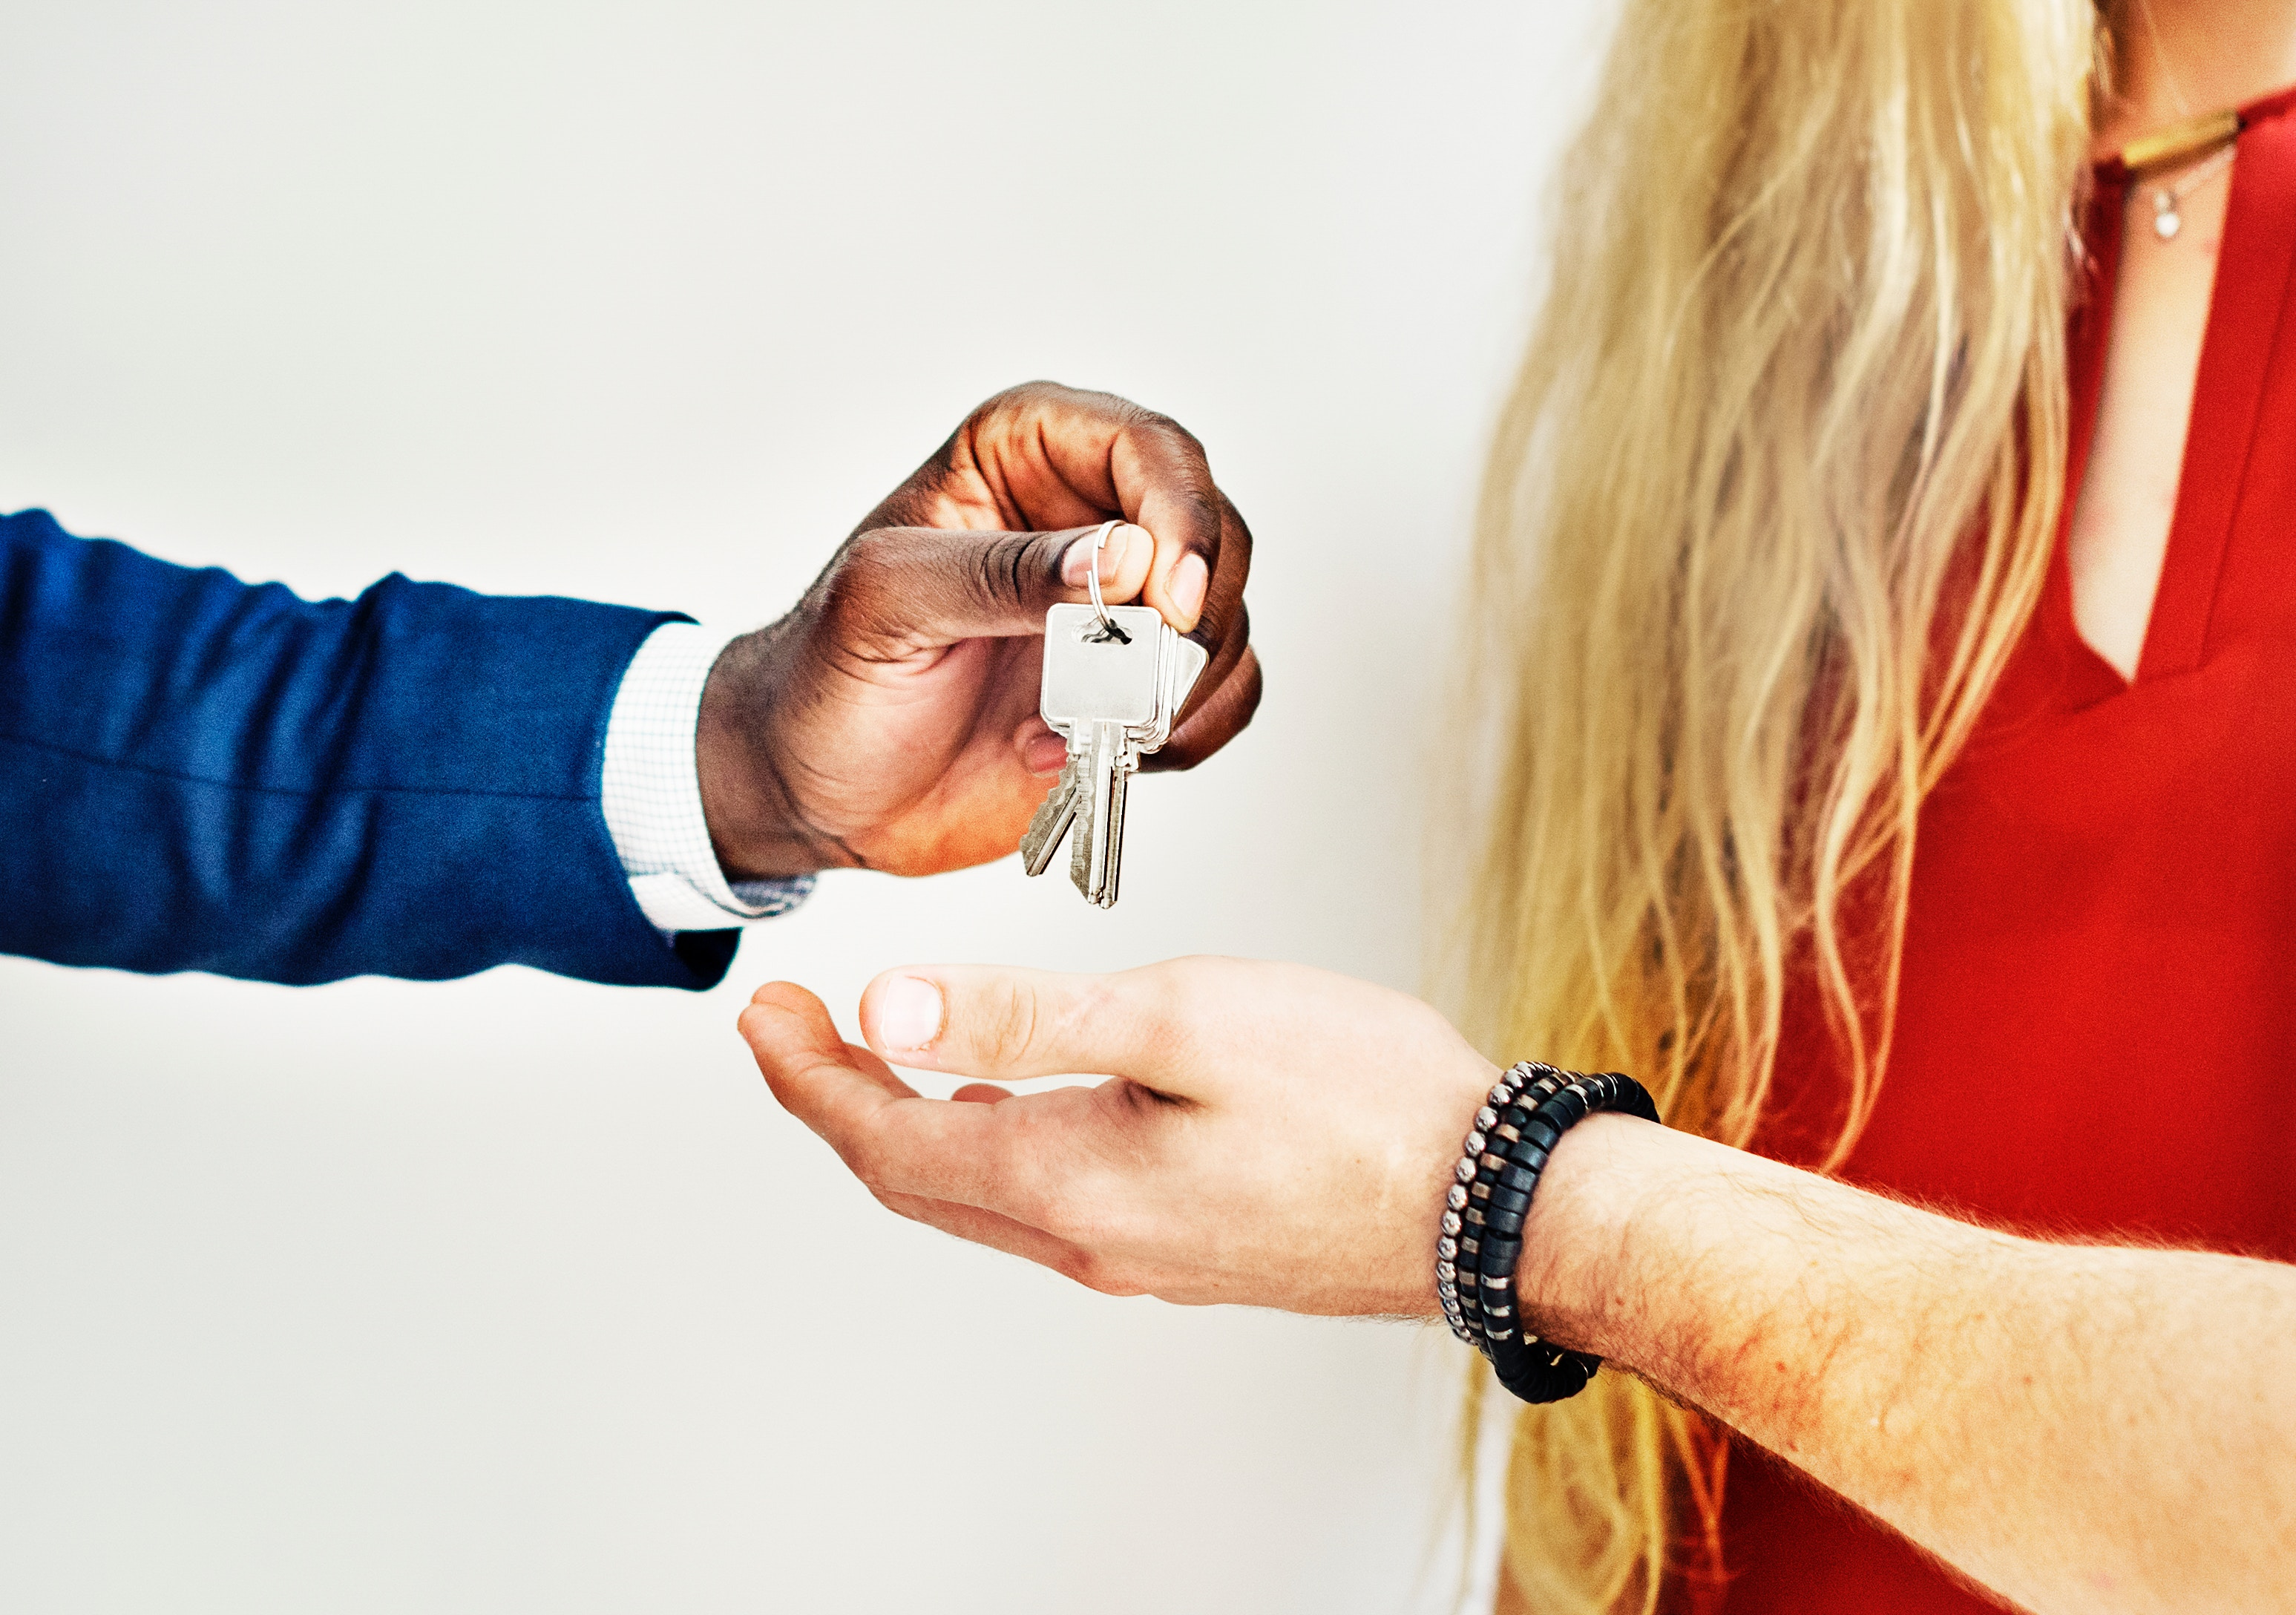 Person handing keys over Photo by rawpixel on Unsplash